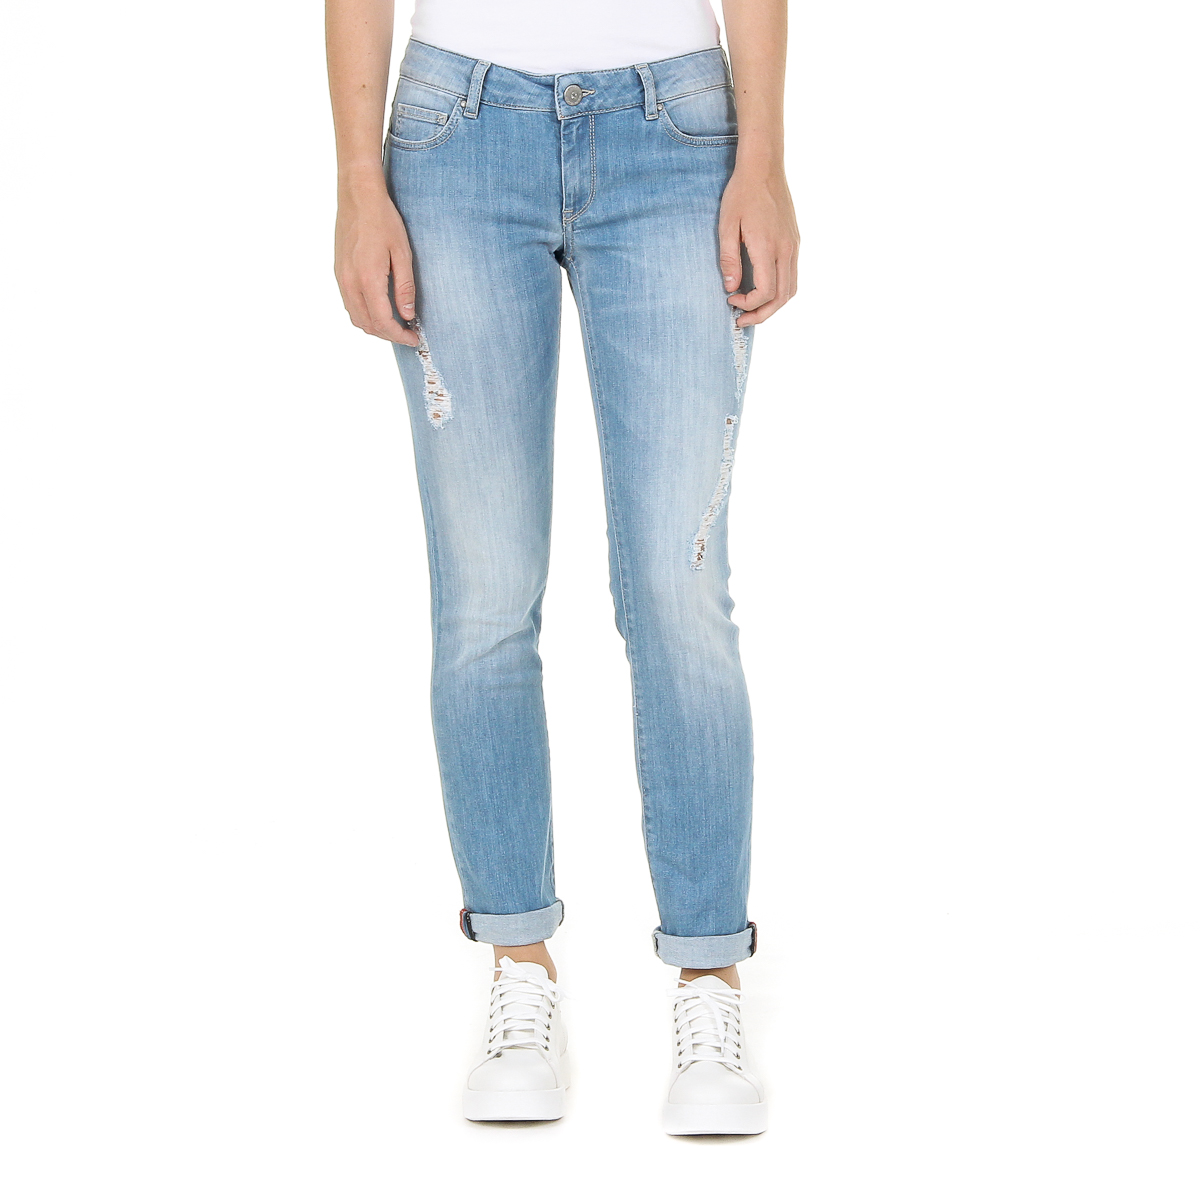 Primary image for Andrew Charles Womens Jeans Denim JOSY